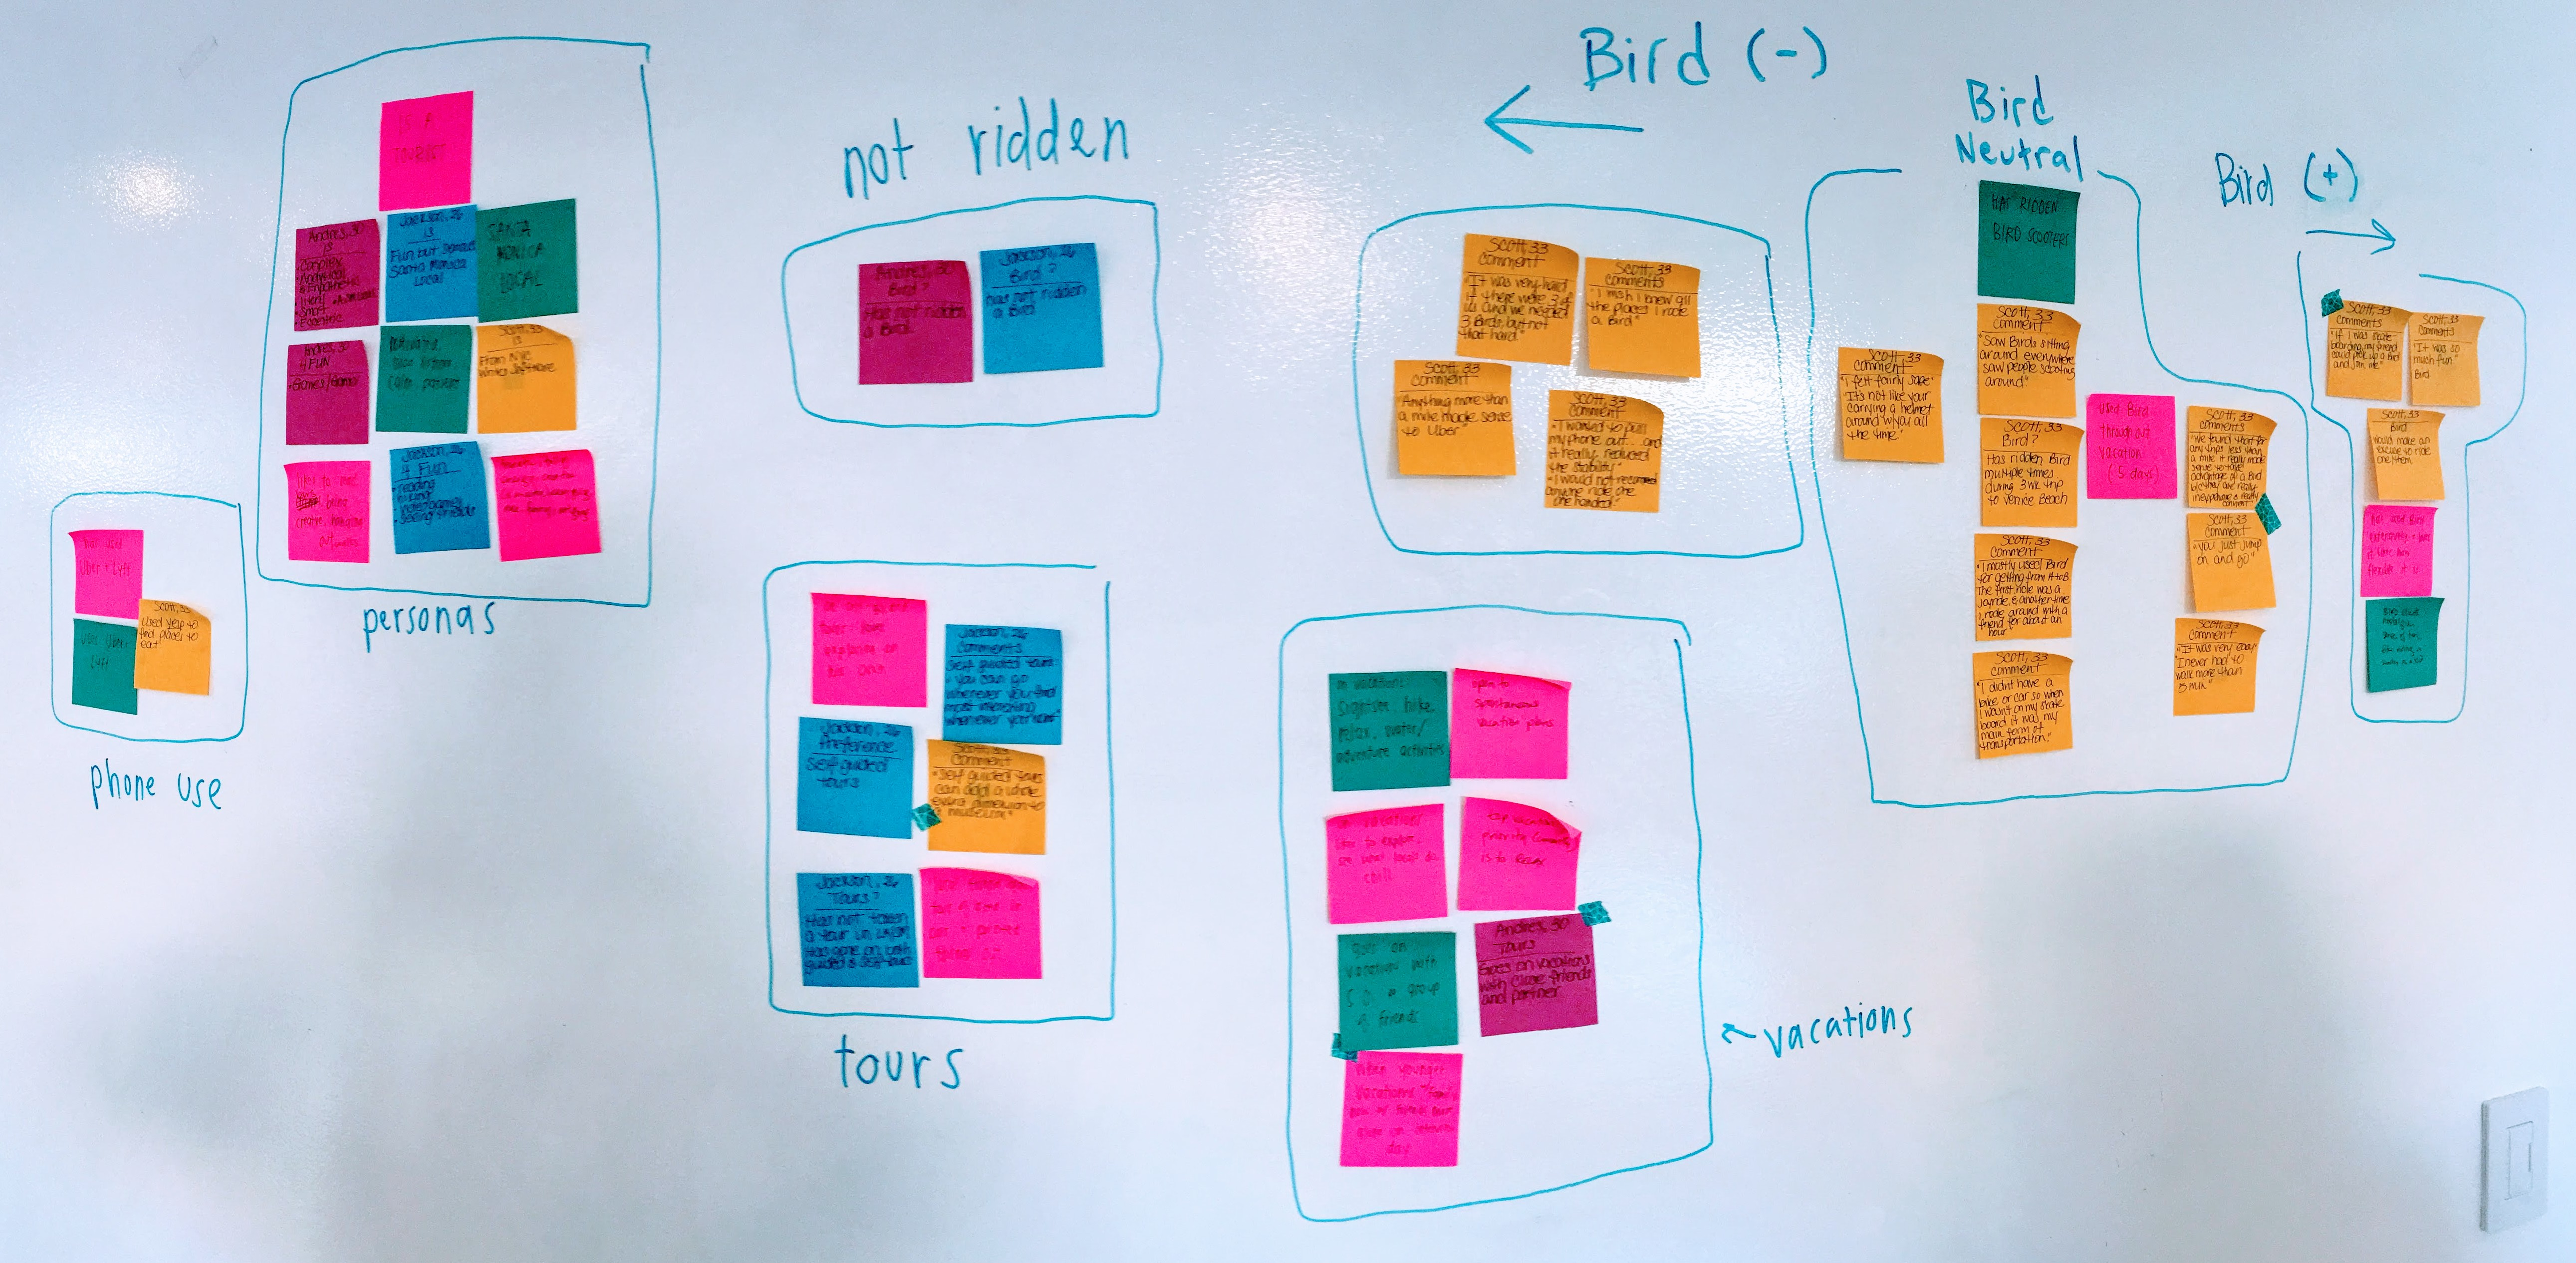 Photo of an affinity map created with Post-its on a whiteboard